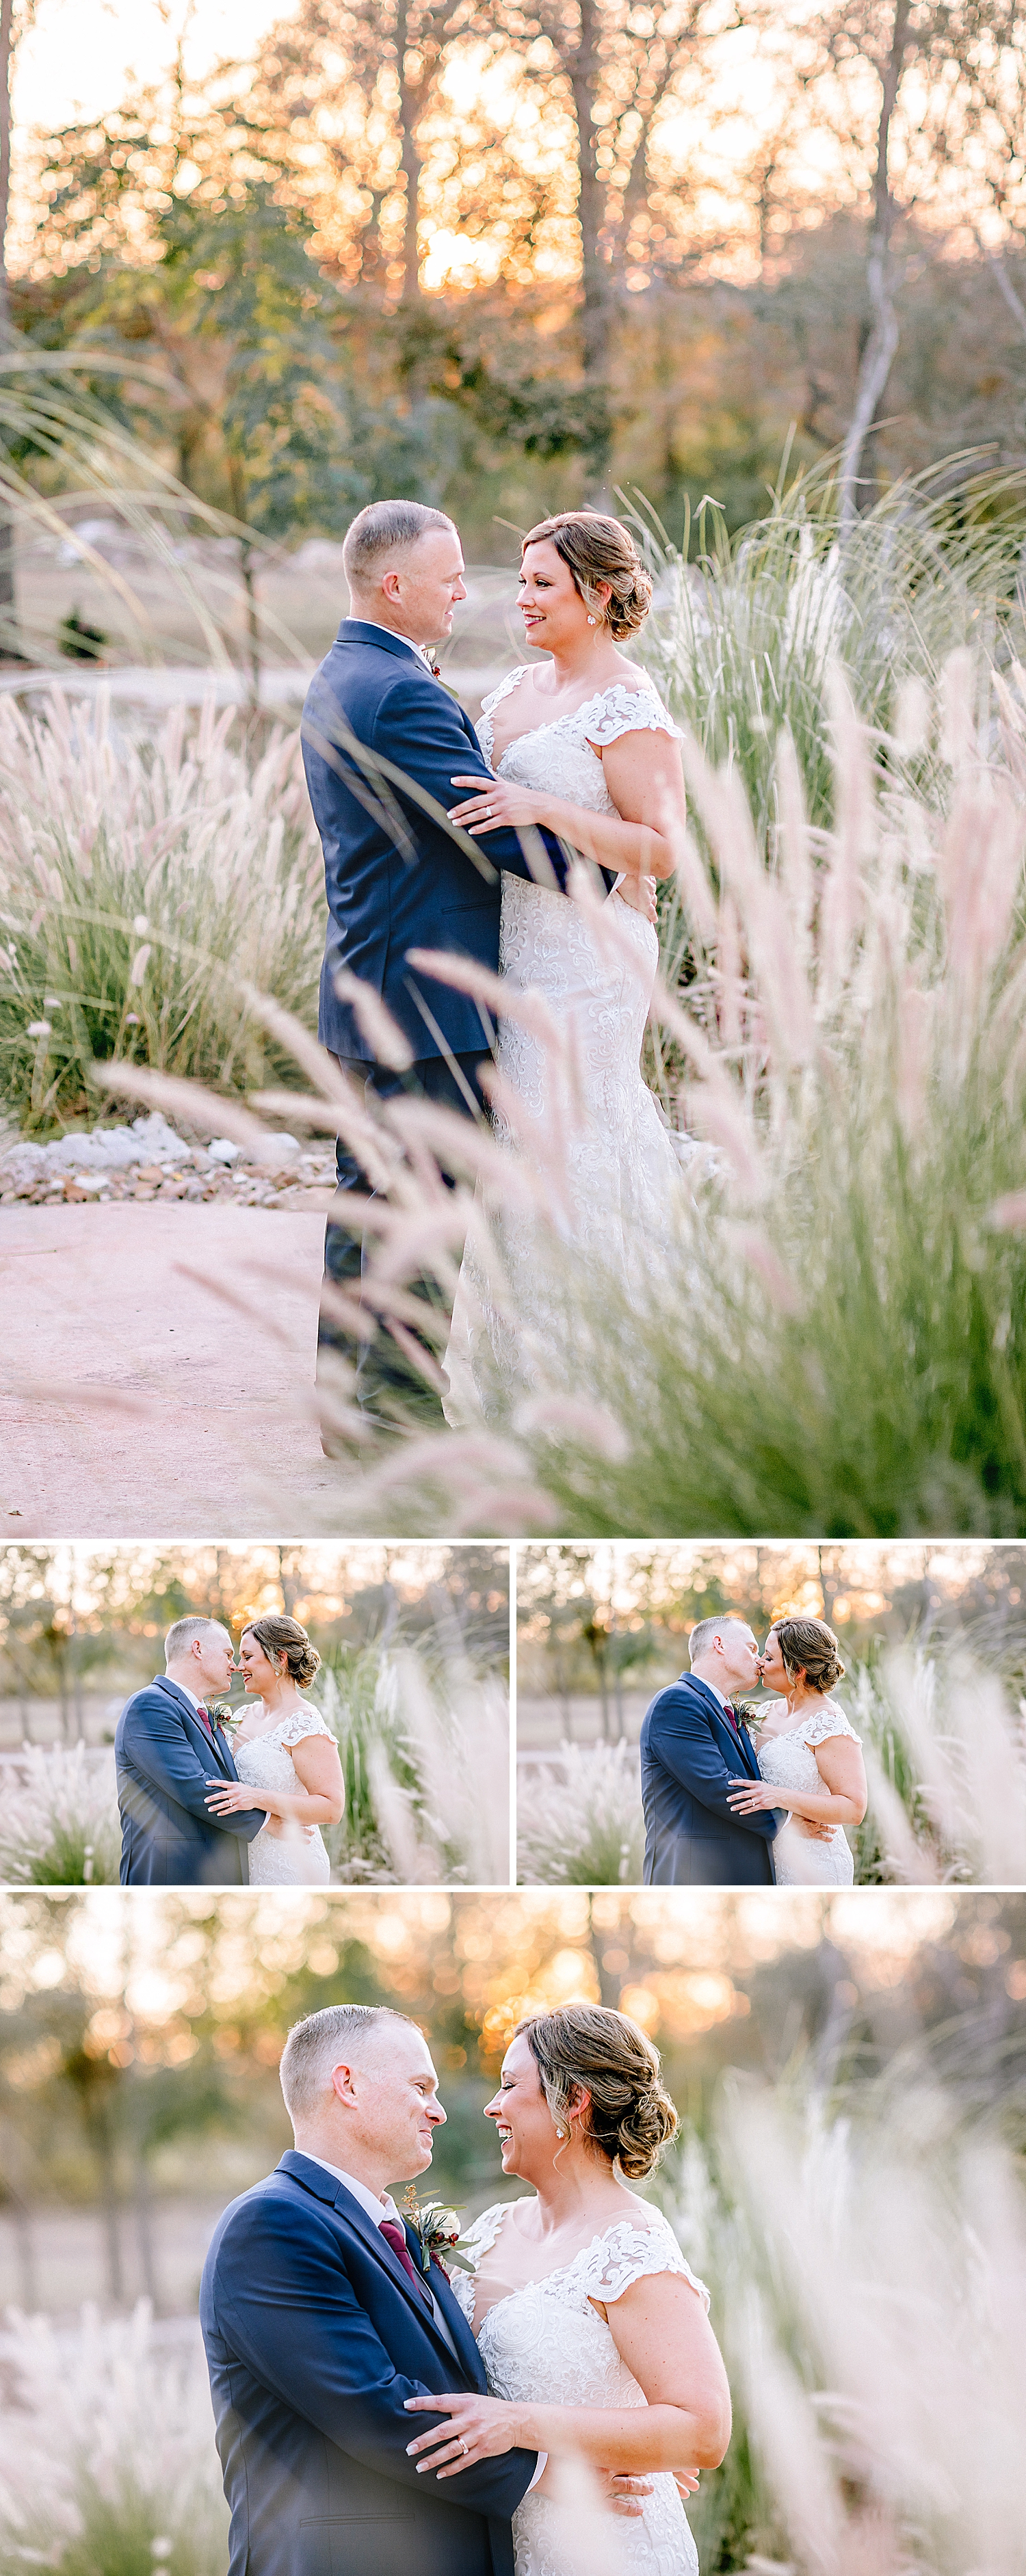 Geronimo-Oaks-Wedding-Venue-Seguin-Texas-Elegant-Navy-Burgundy-Wedding-Carly-Barton-Photography_0052.jpg